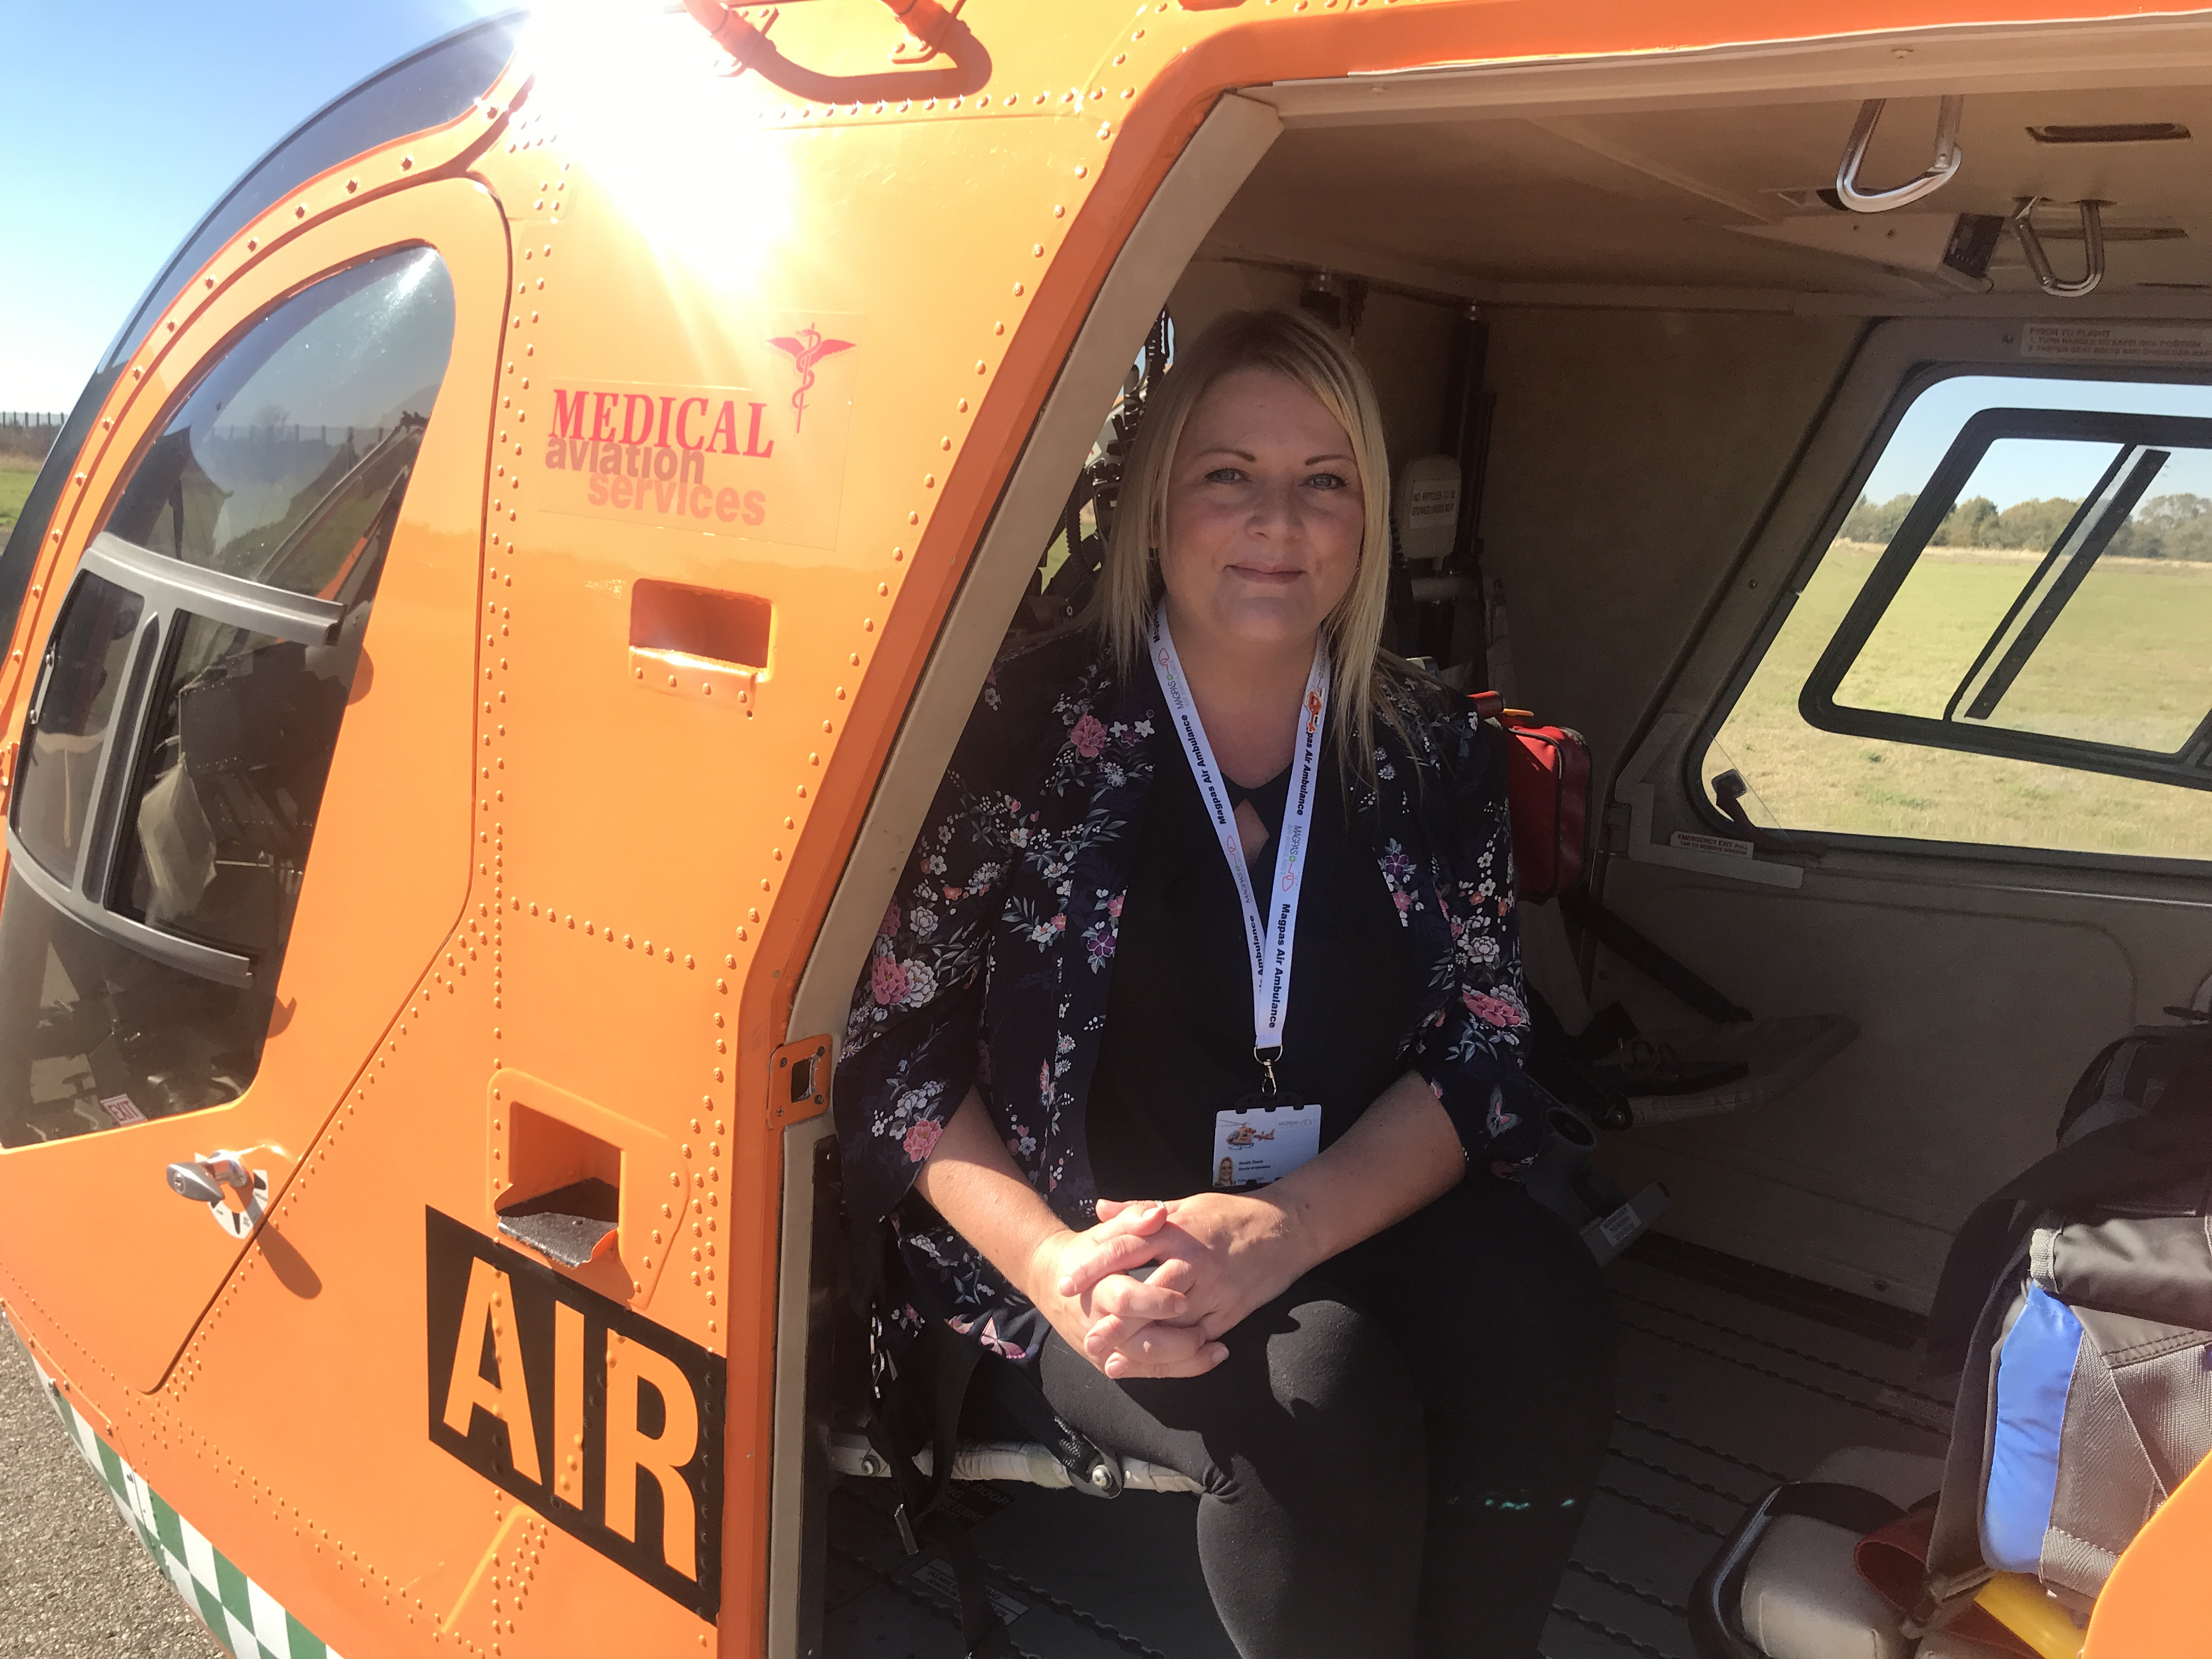 Magpas-Air-Ambulance-Director-of-Operations-Natalie-church1.JPG